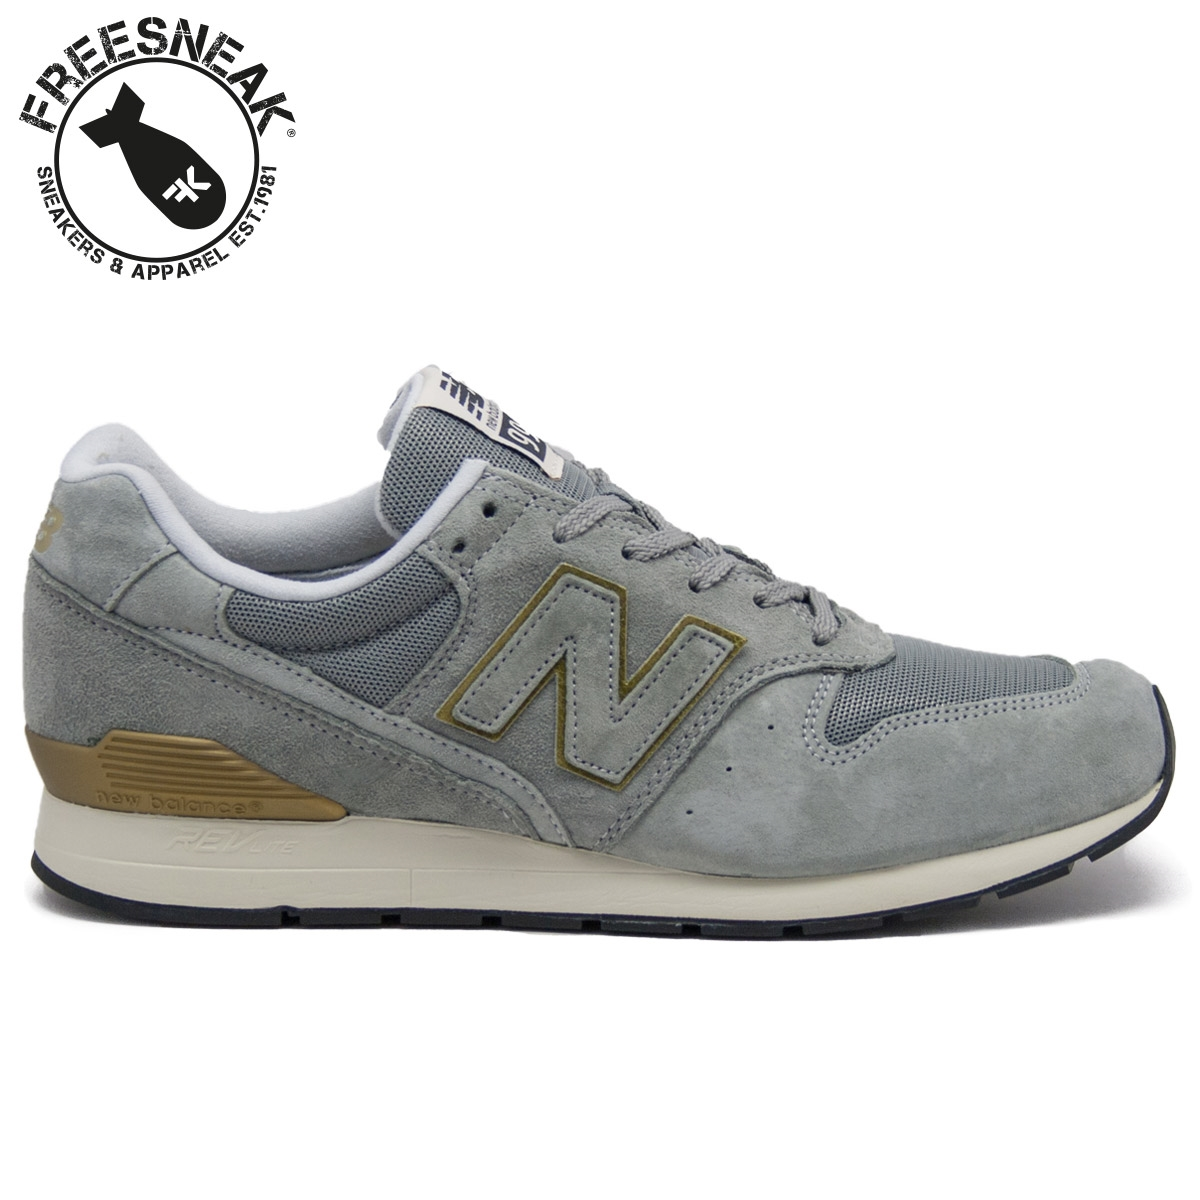 new balance 996 grey and gold